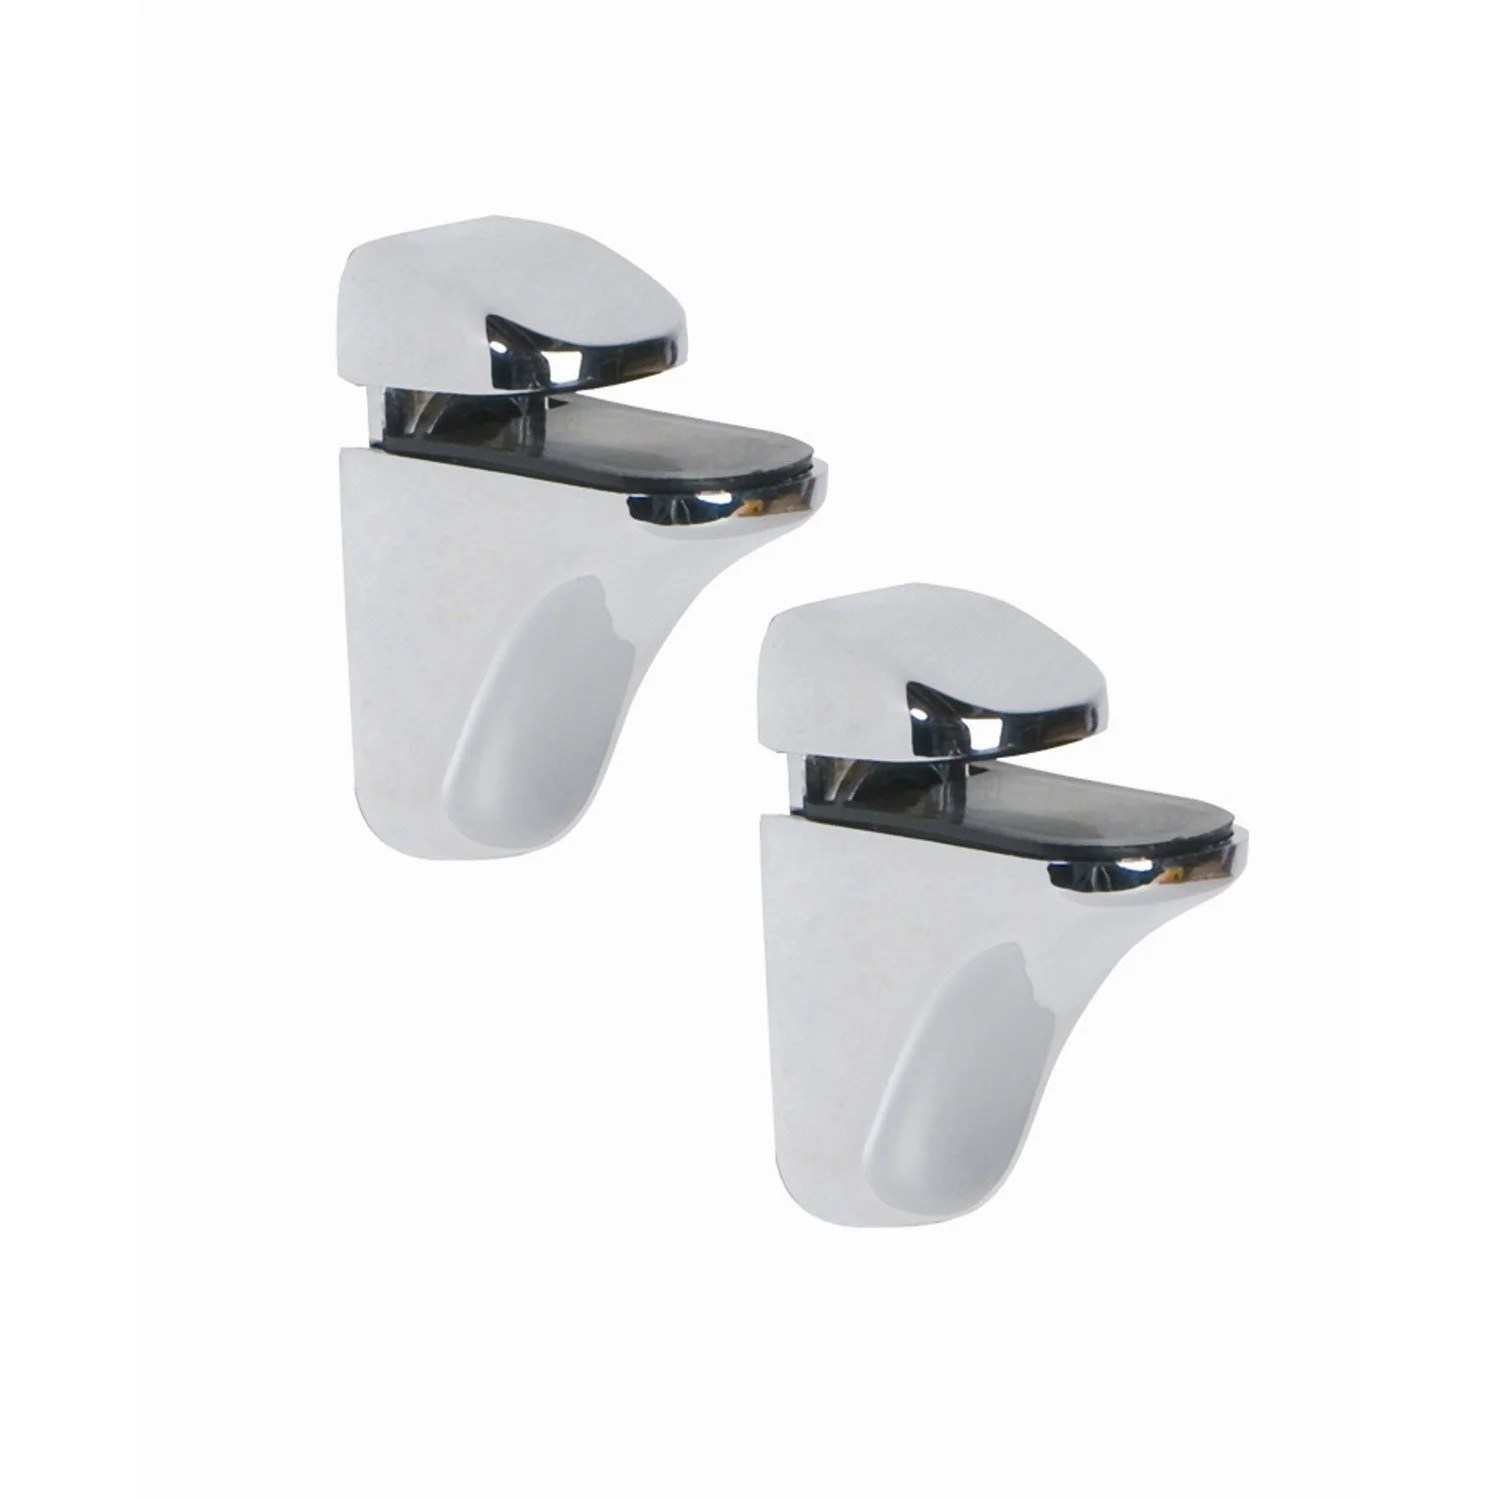 Tablette Salle De Bain Verre Leroy Merlin Lot De 2 Supports Tablette Pince Chromé Brillant